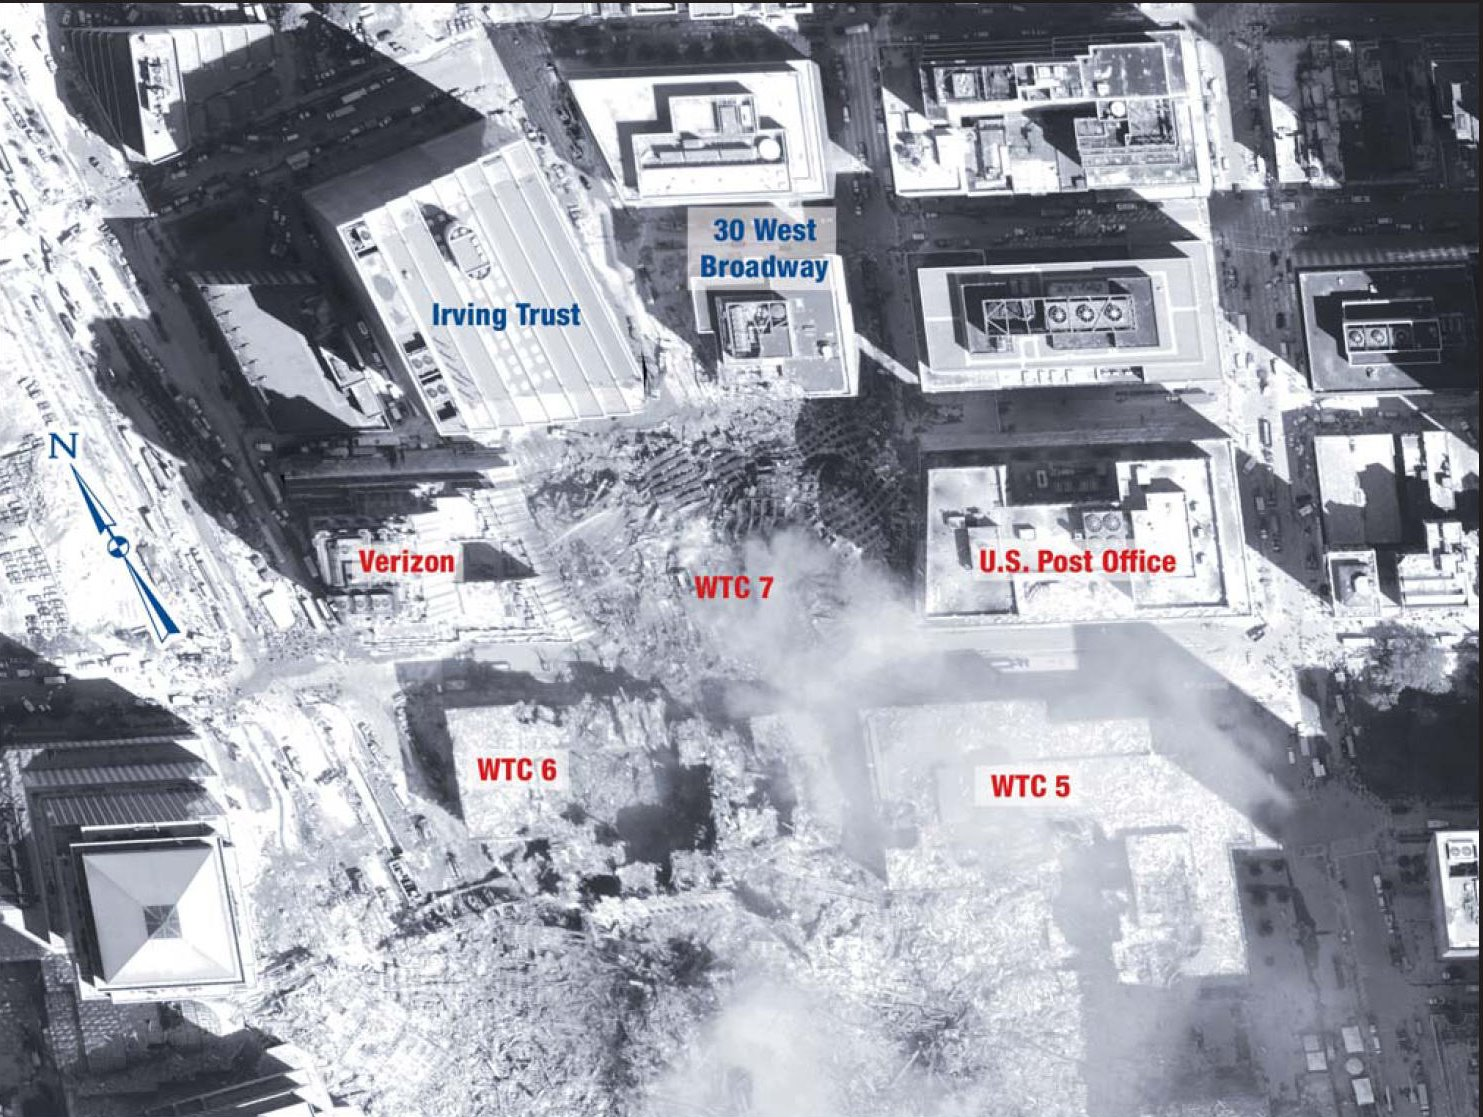 http://www.reopen911.info/media//image/WTC_7_aerial_photo.jpg